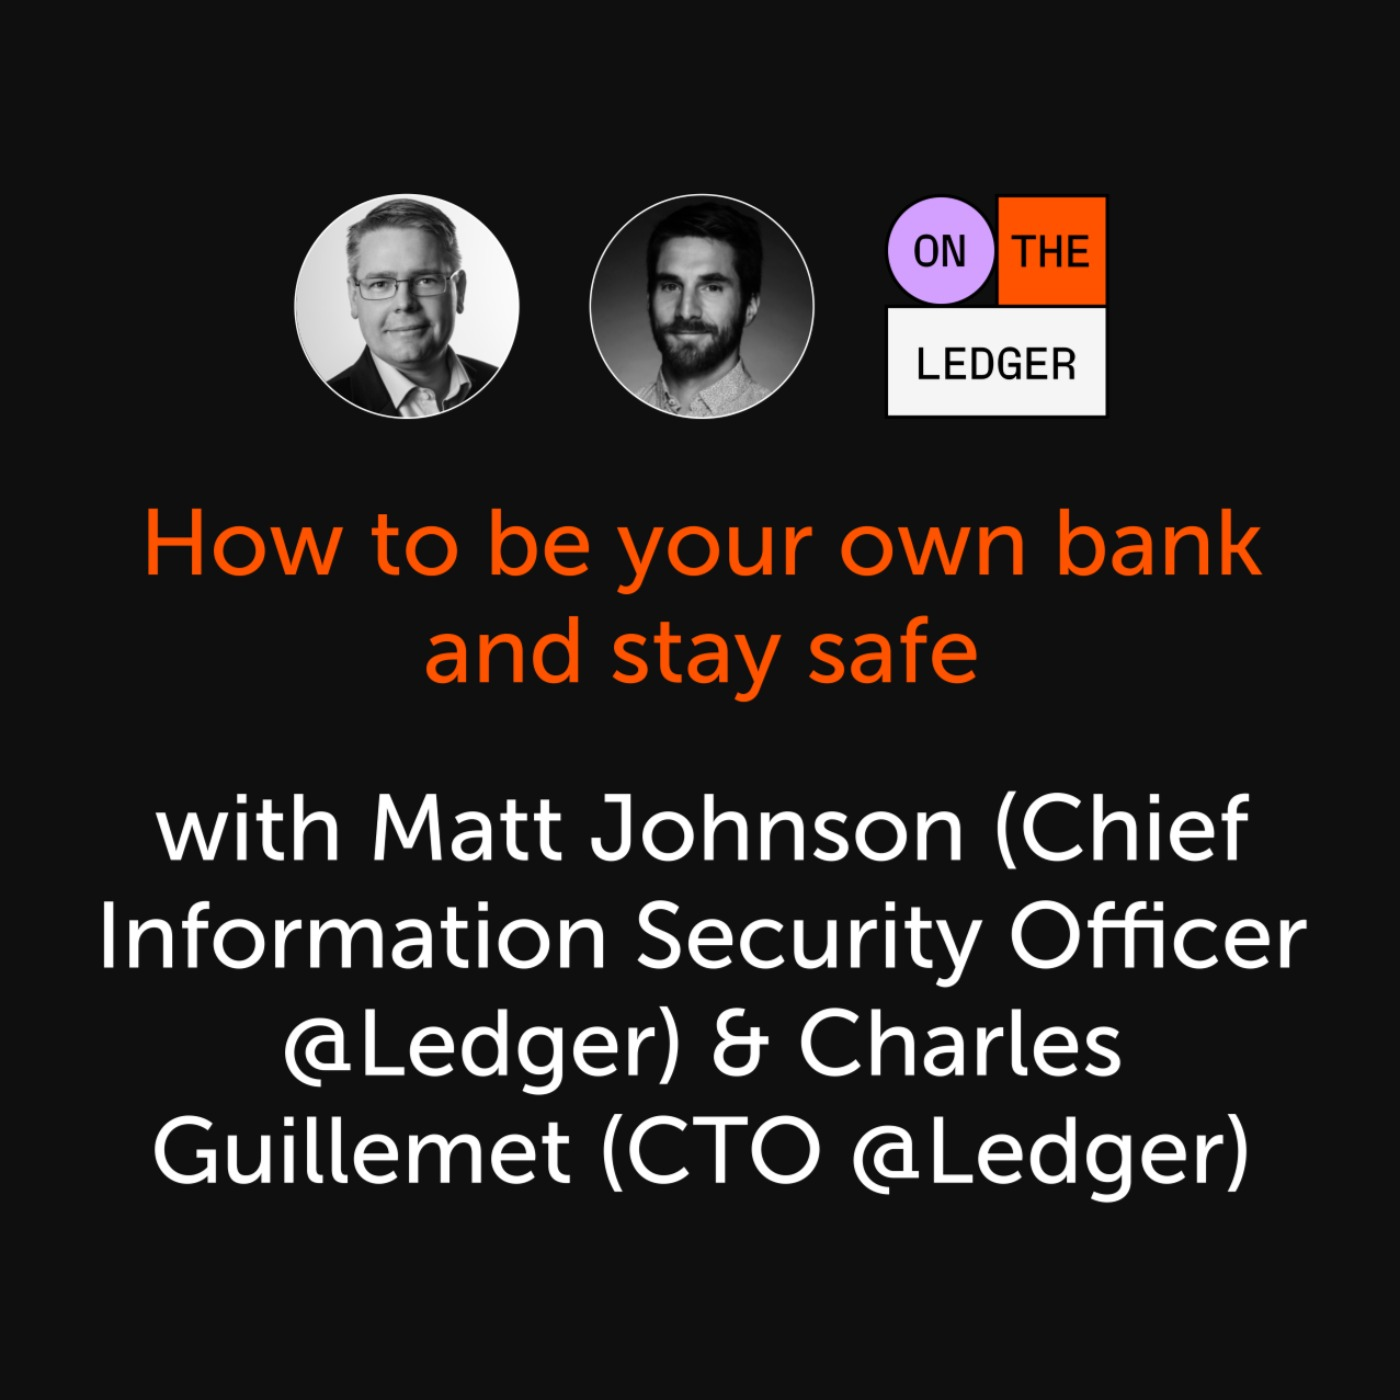 #4 How to be your own bank and stay safe? w/ Matt Johnson & Charles Guillemet